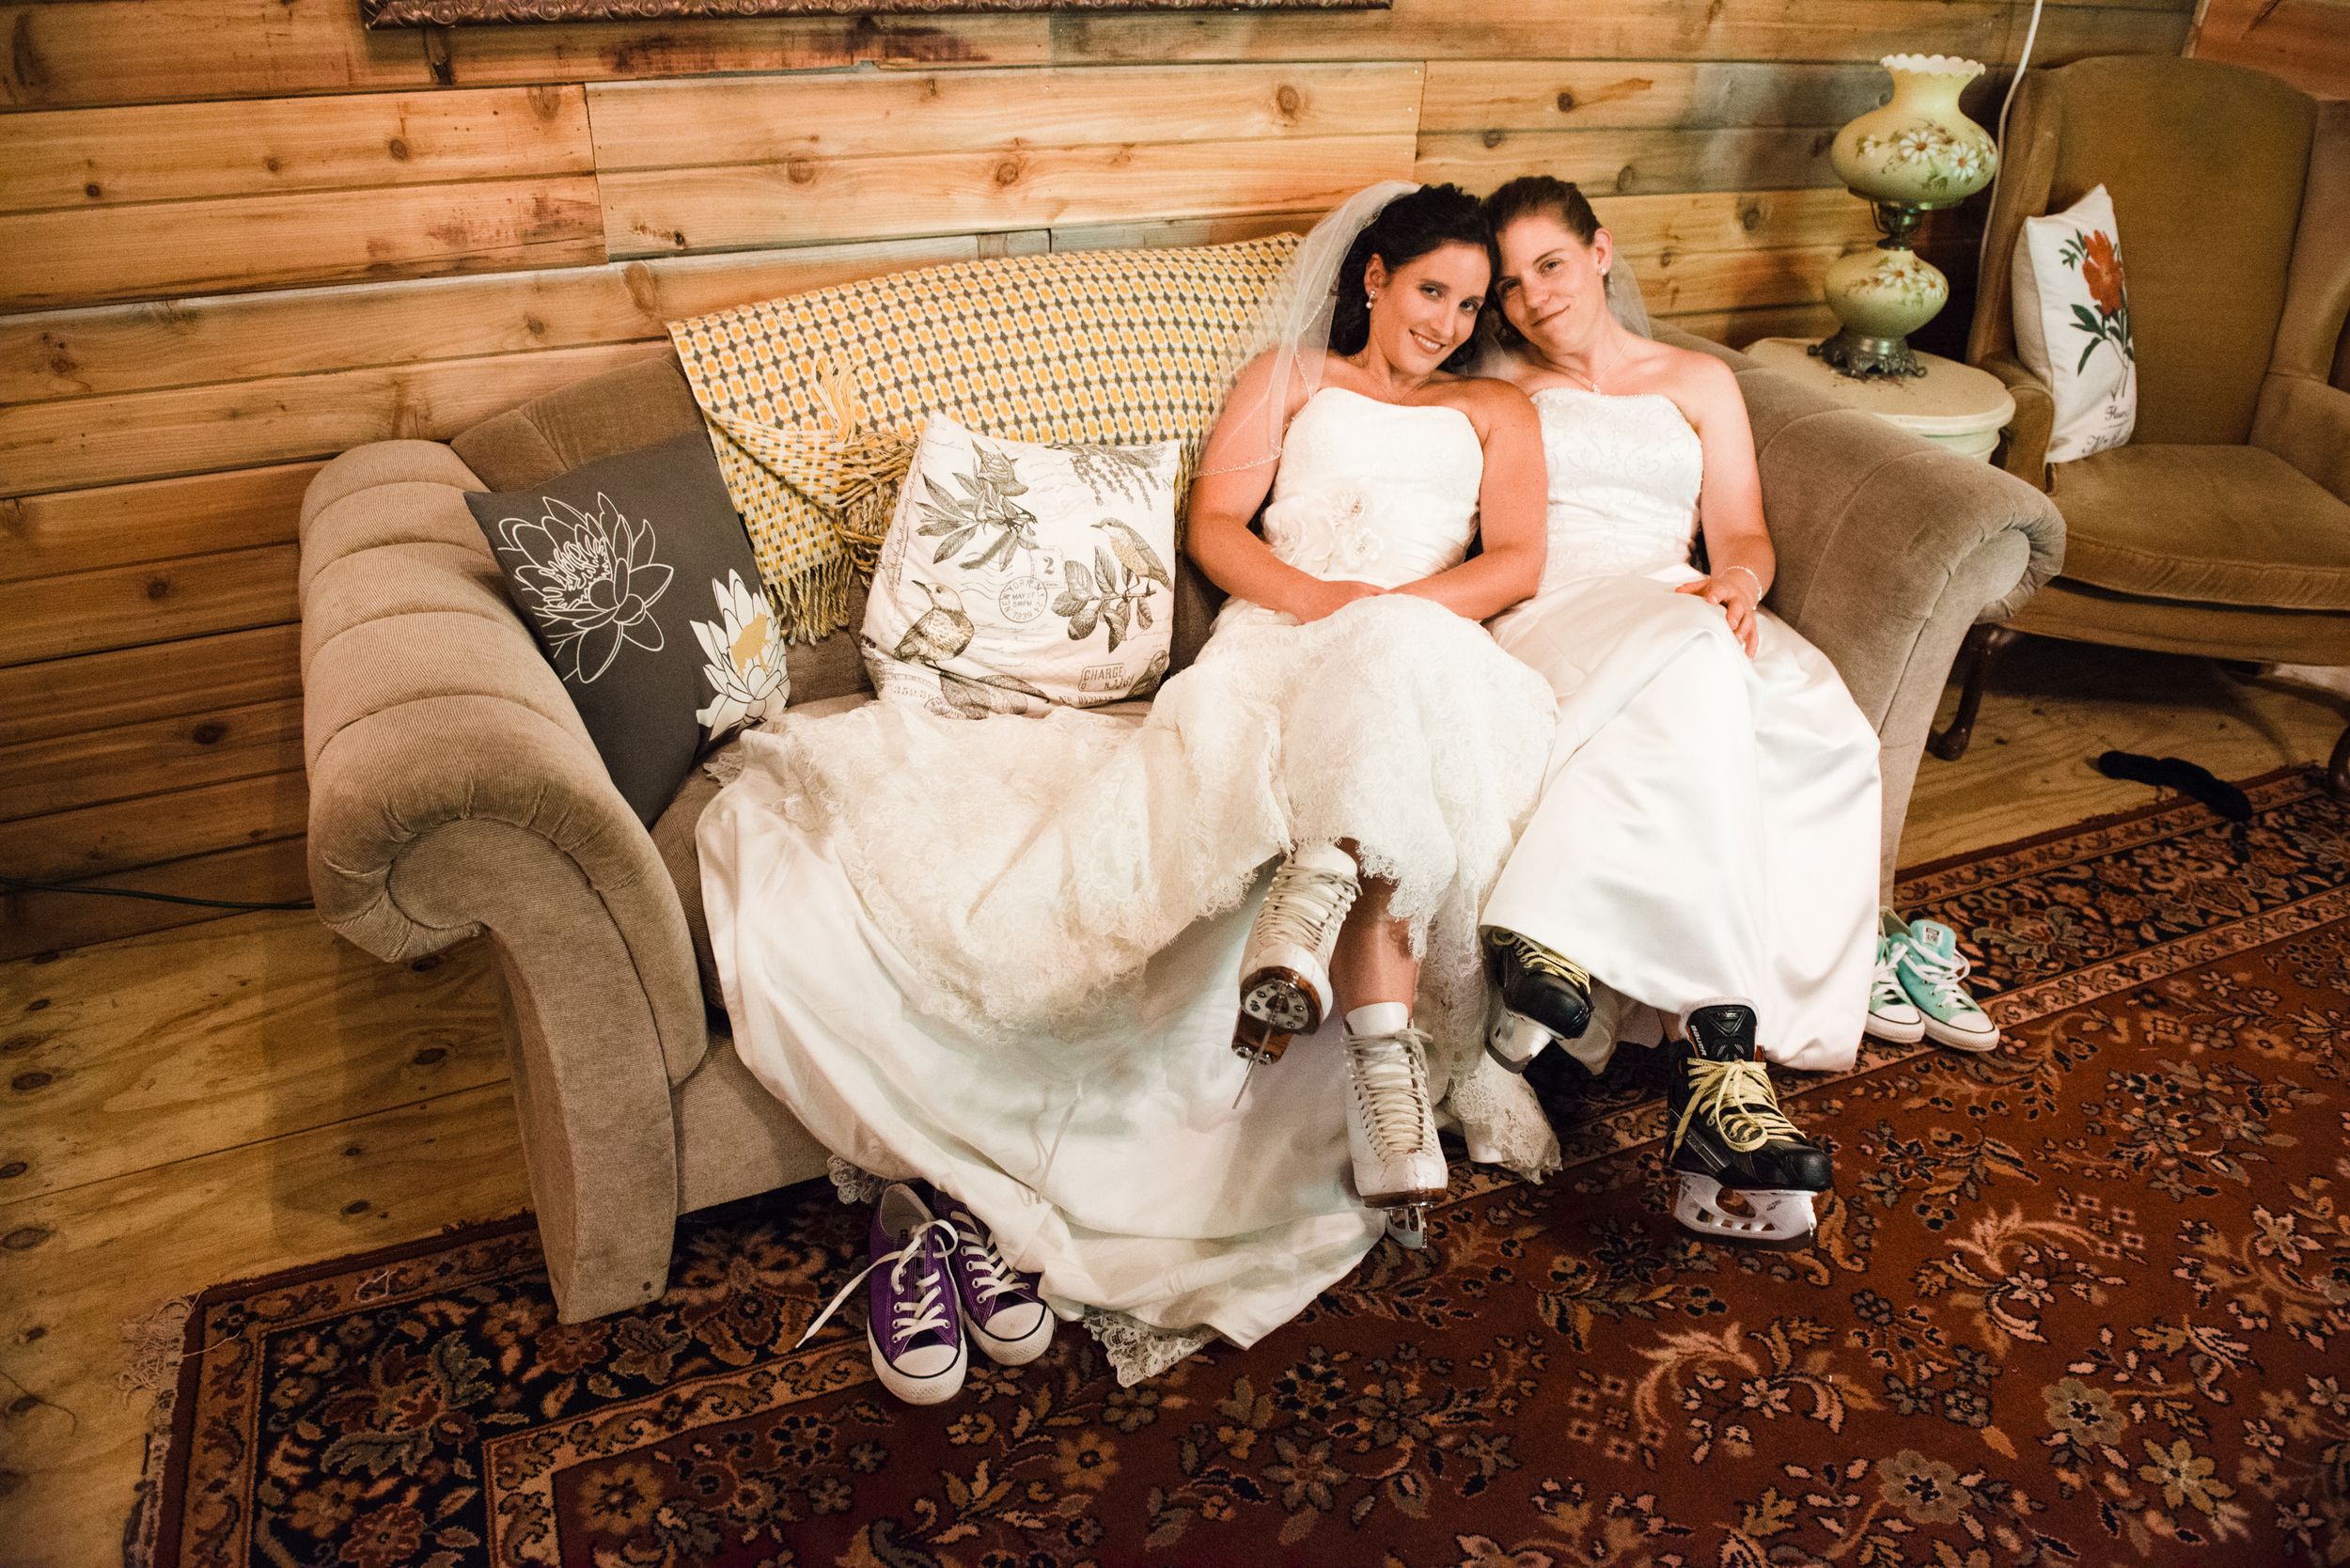 Minnesota LGBT Wedding Photography - Megan and Trista - RKH Images - Portraits (228 of 490).jpg